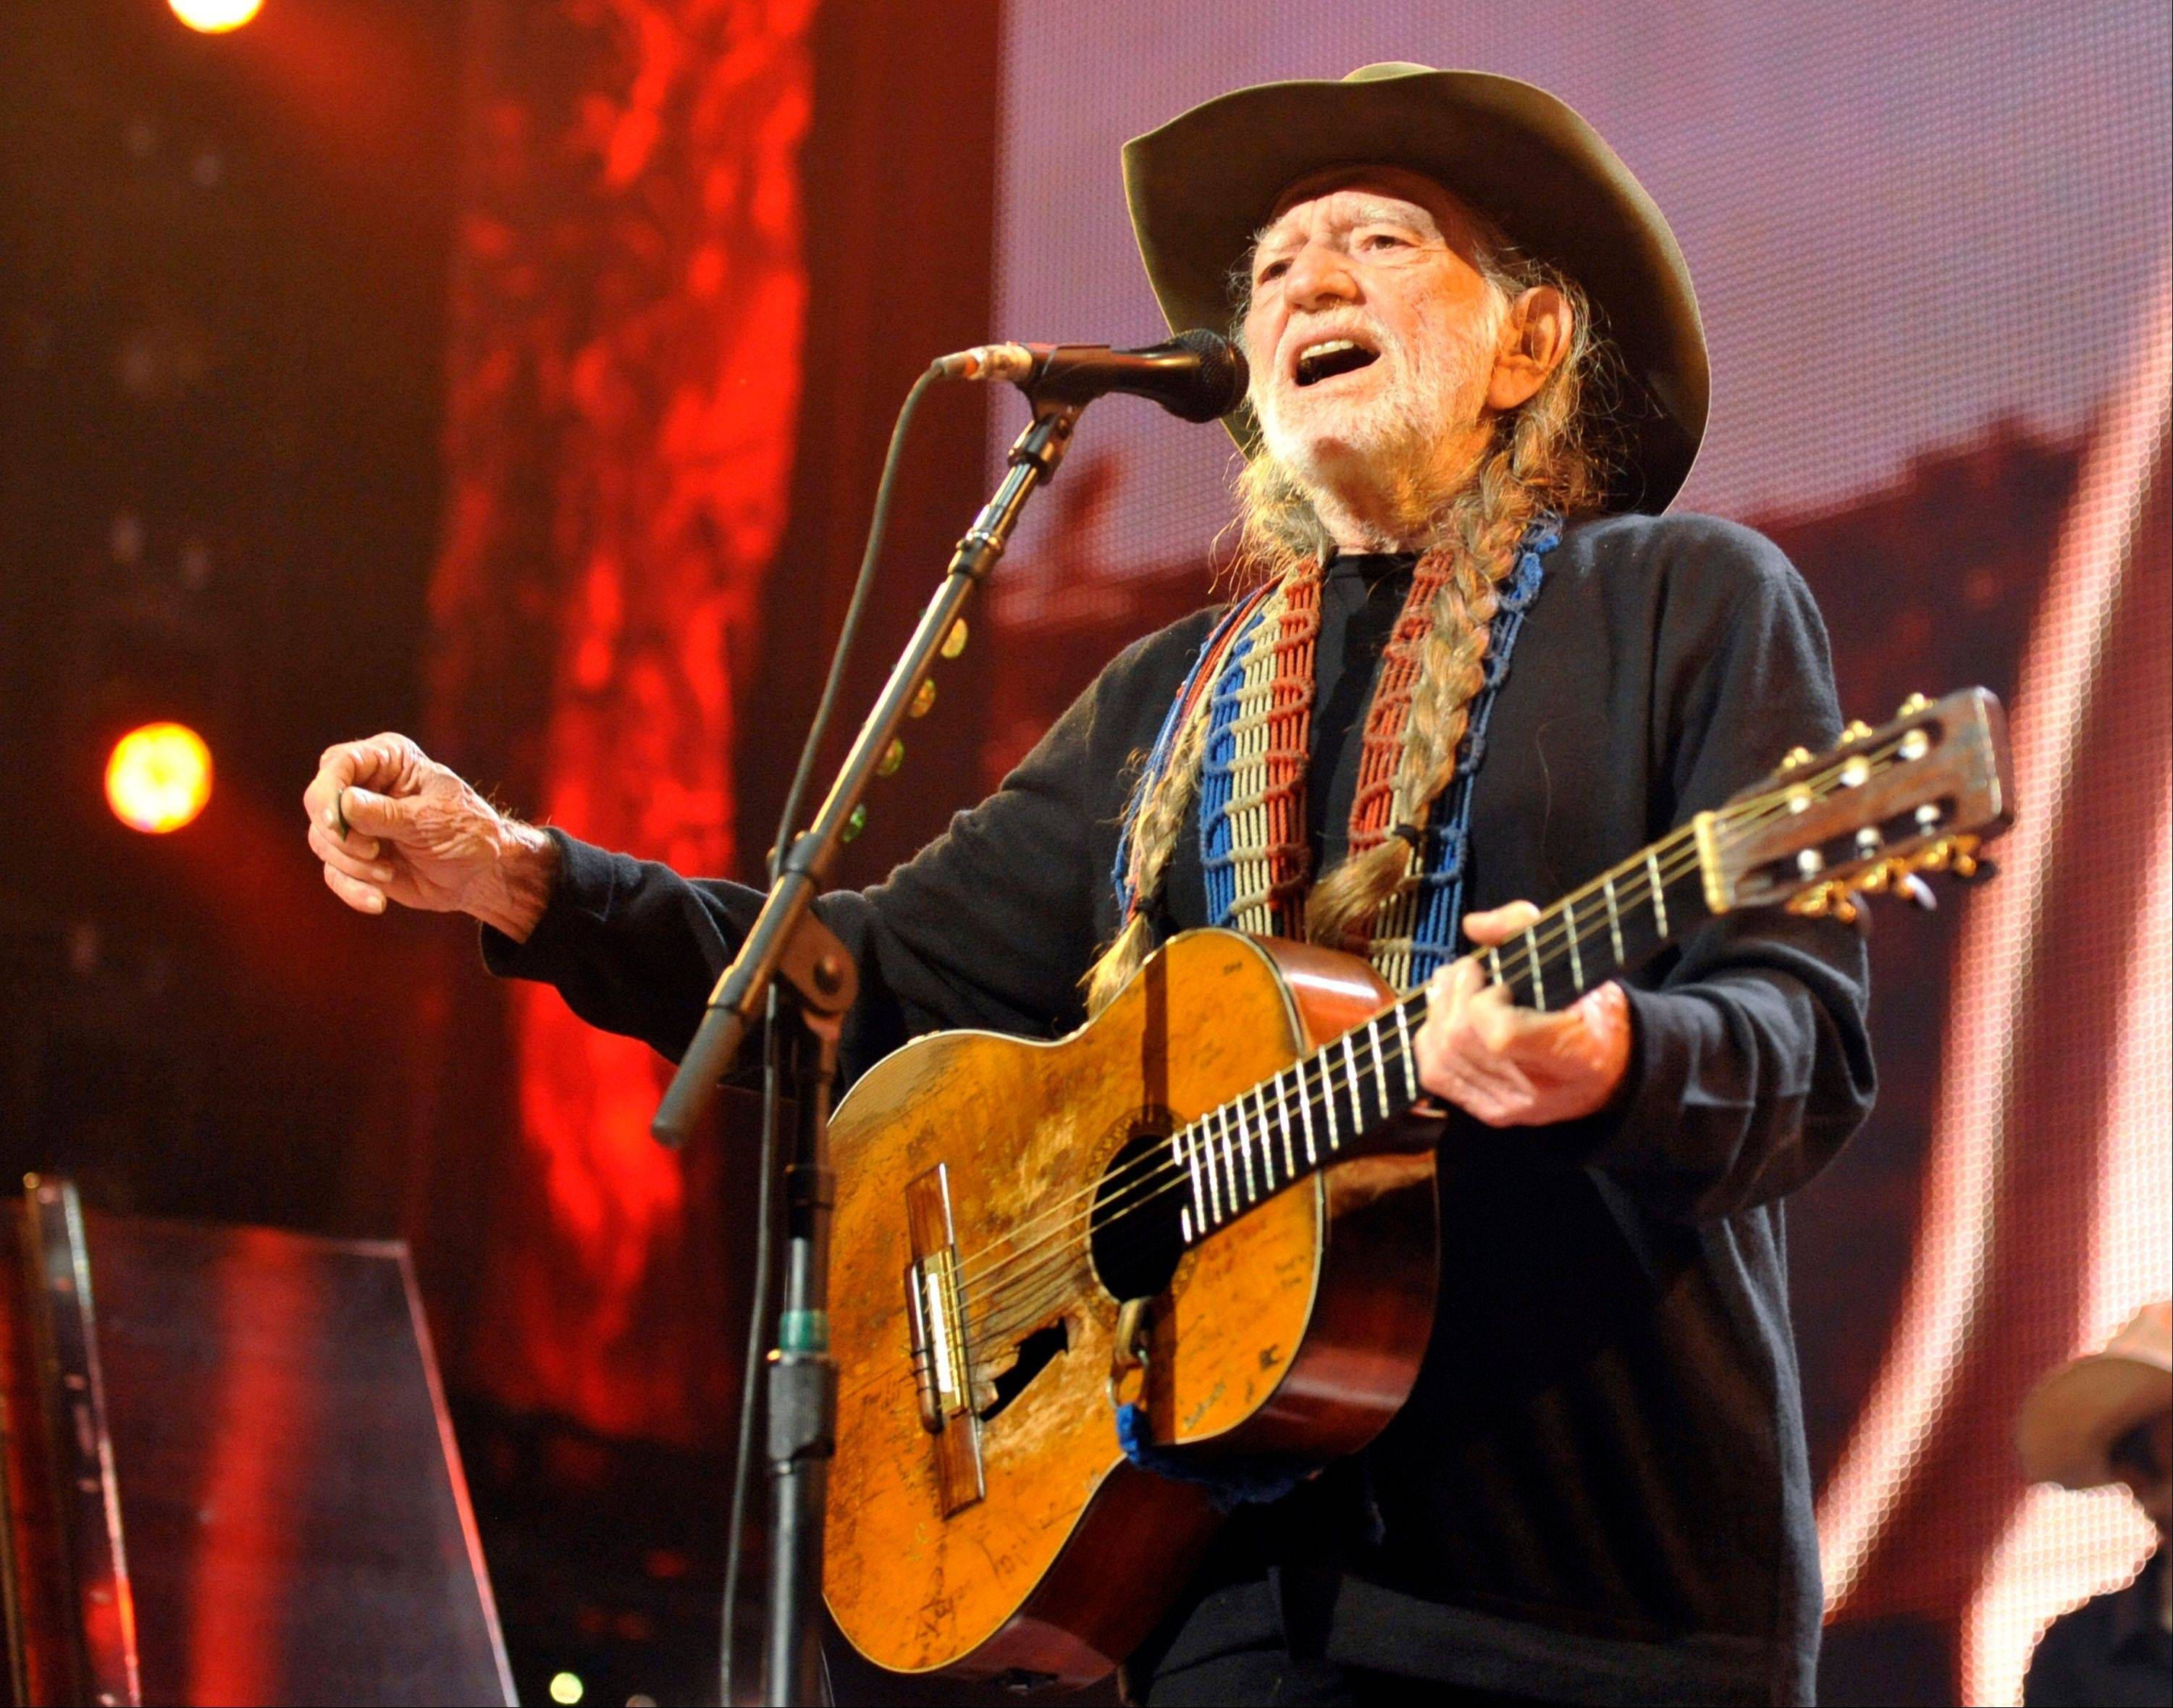 Willie Nelson has been forced to pull out of the Southern Ground Music & Food Festival and three other shows, including one in Springfield, due to a shoulder injury. Nelson's publicist says Wednesday the 80-year-old country music star is under a doctor's orders to rest his shoulder for a week, meaning he'll miss shows in Carmel, Ind., Charlotte, Mich., Springfield, and Saturday's appearance at the festival hosted by Zac Brown in Nashville, Tenn.